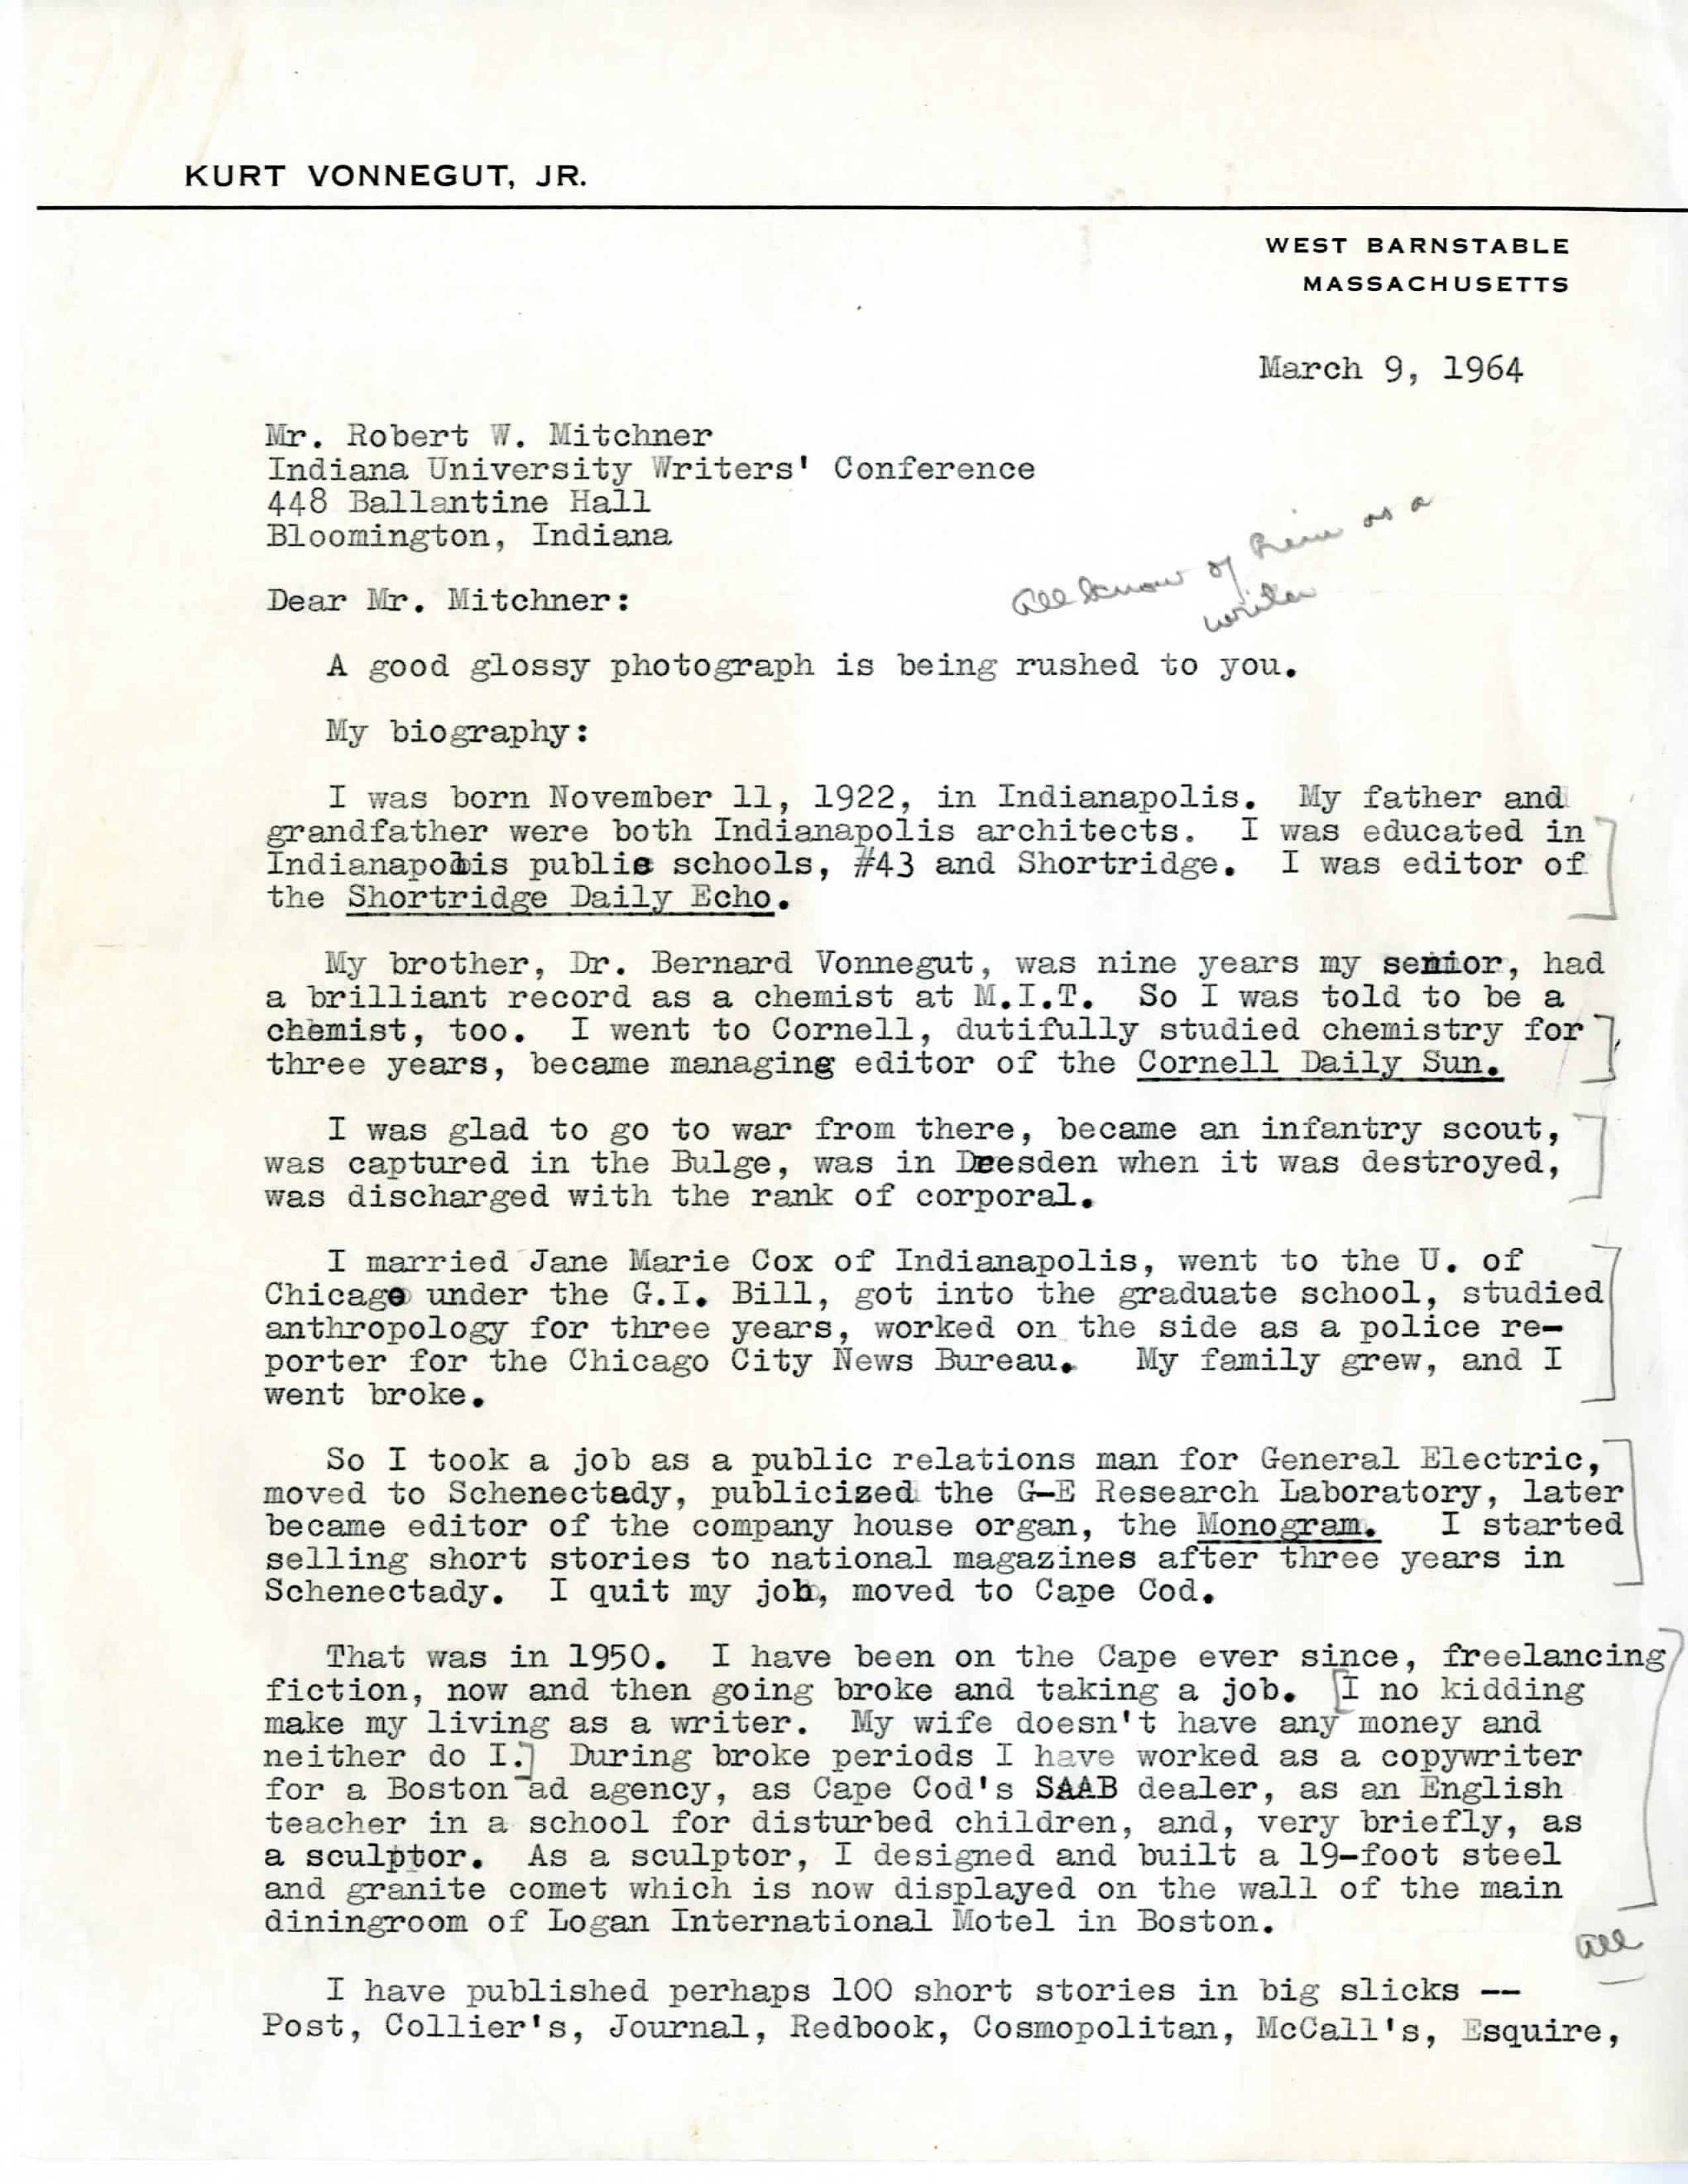 1960s na university archives mitchner also writes to vonnegut asking if a 10 30 am slot would be acceptable for his short story workshop as well as if vonnegut would a chapter